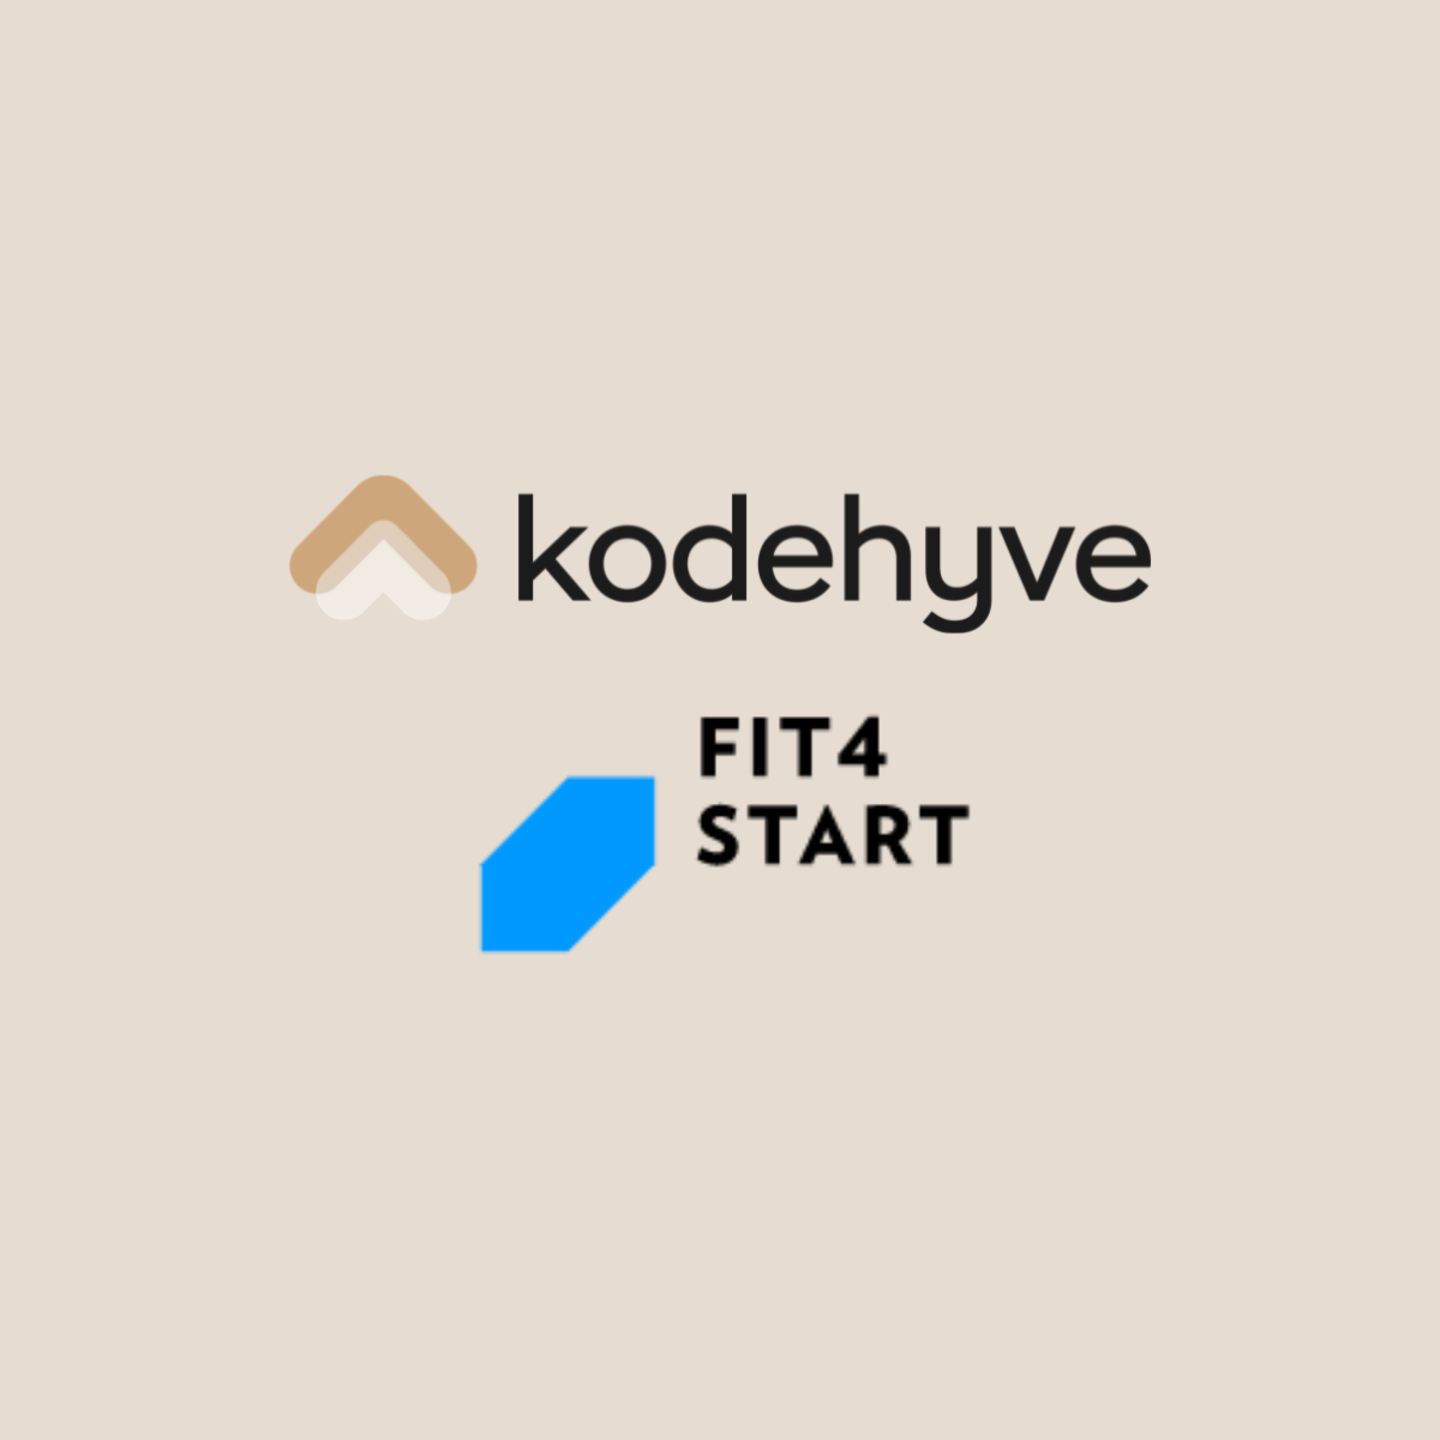 kodehyve Amongts 15 Startups Selected for Fit 4 Start